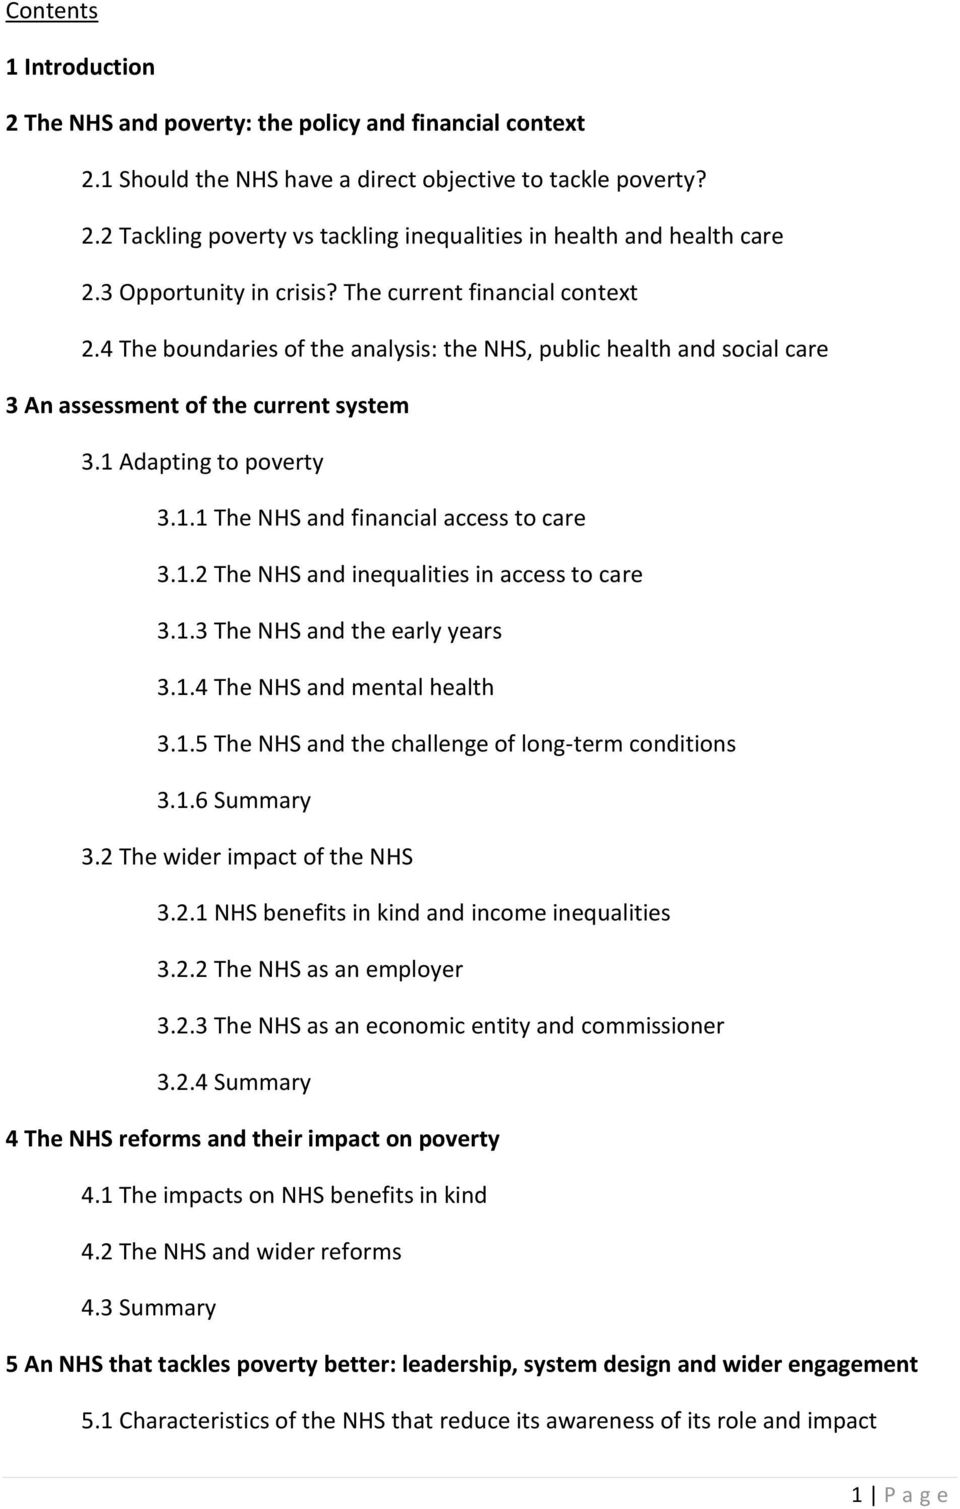 Adapting to poverty 3.1.1 The NHS and financial access to care 3.1.2 The NHS and inequalities in access to care 3.1.3 The NHS and the early years 3.1.4 The NHS and mental health 3.1.5 The NHS and the challenge of long-term conditions 3.